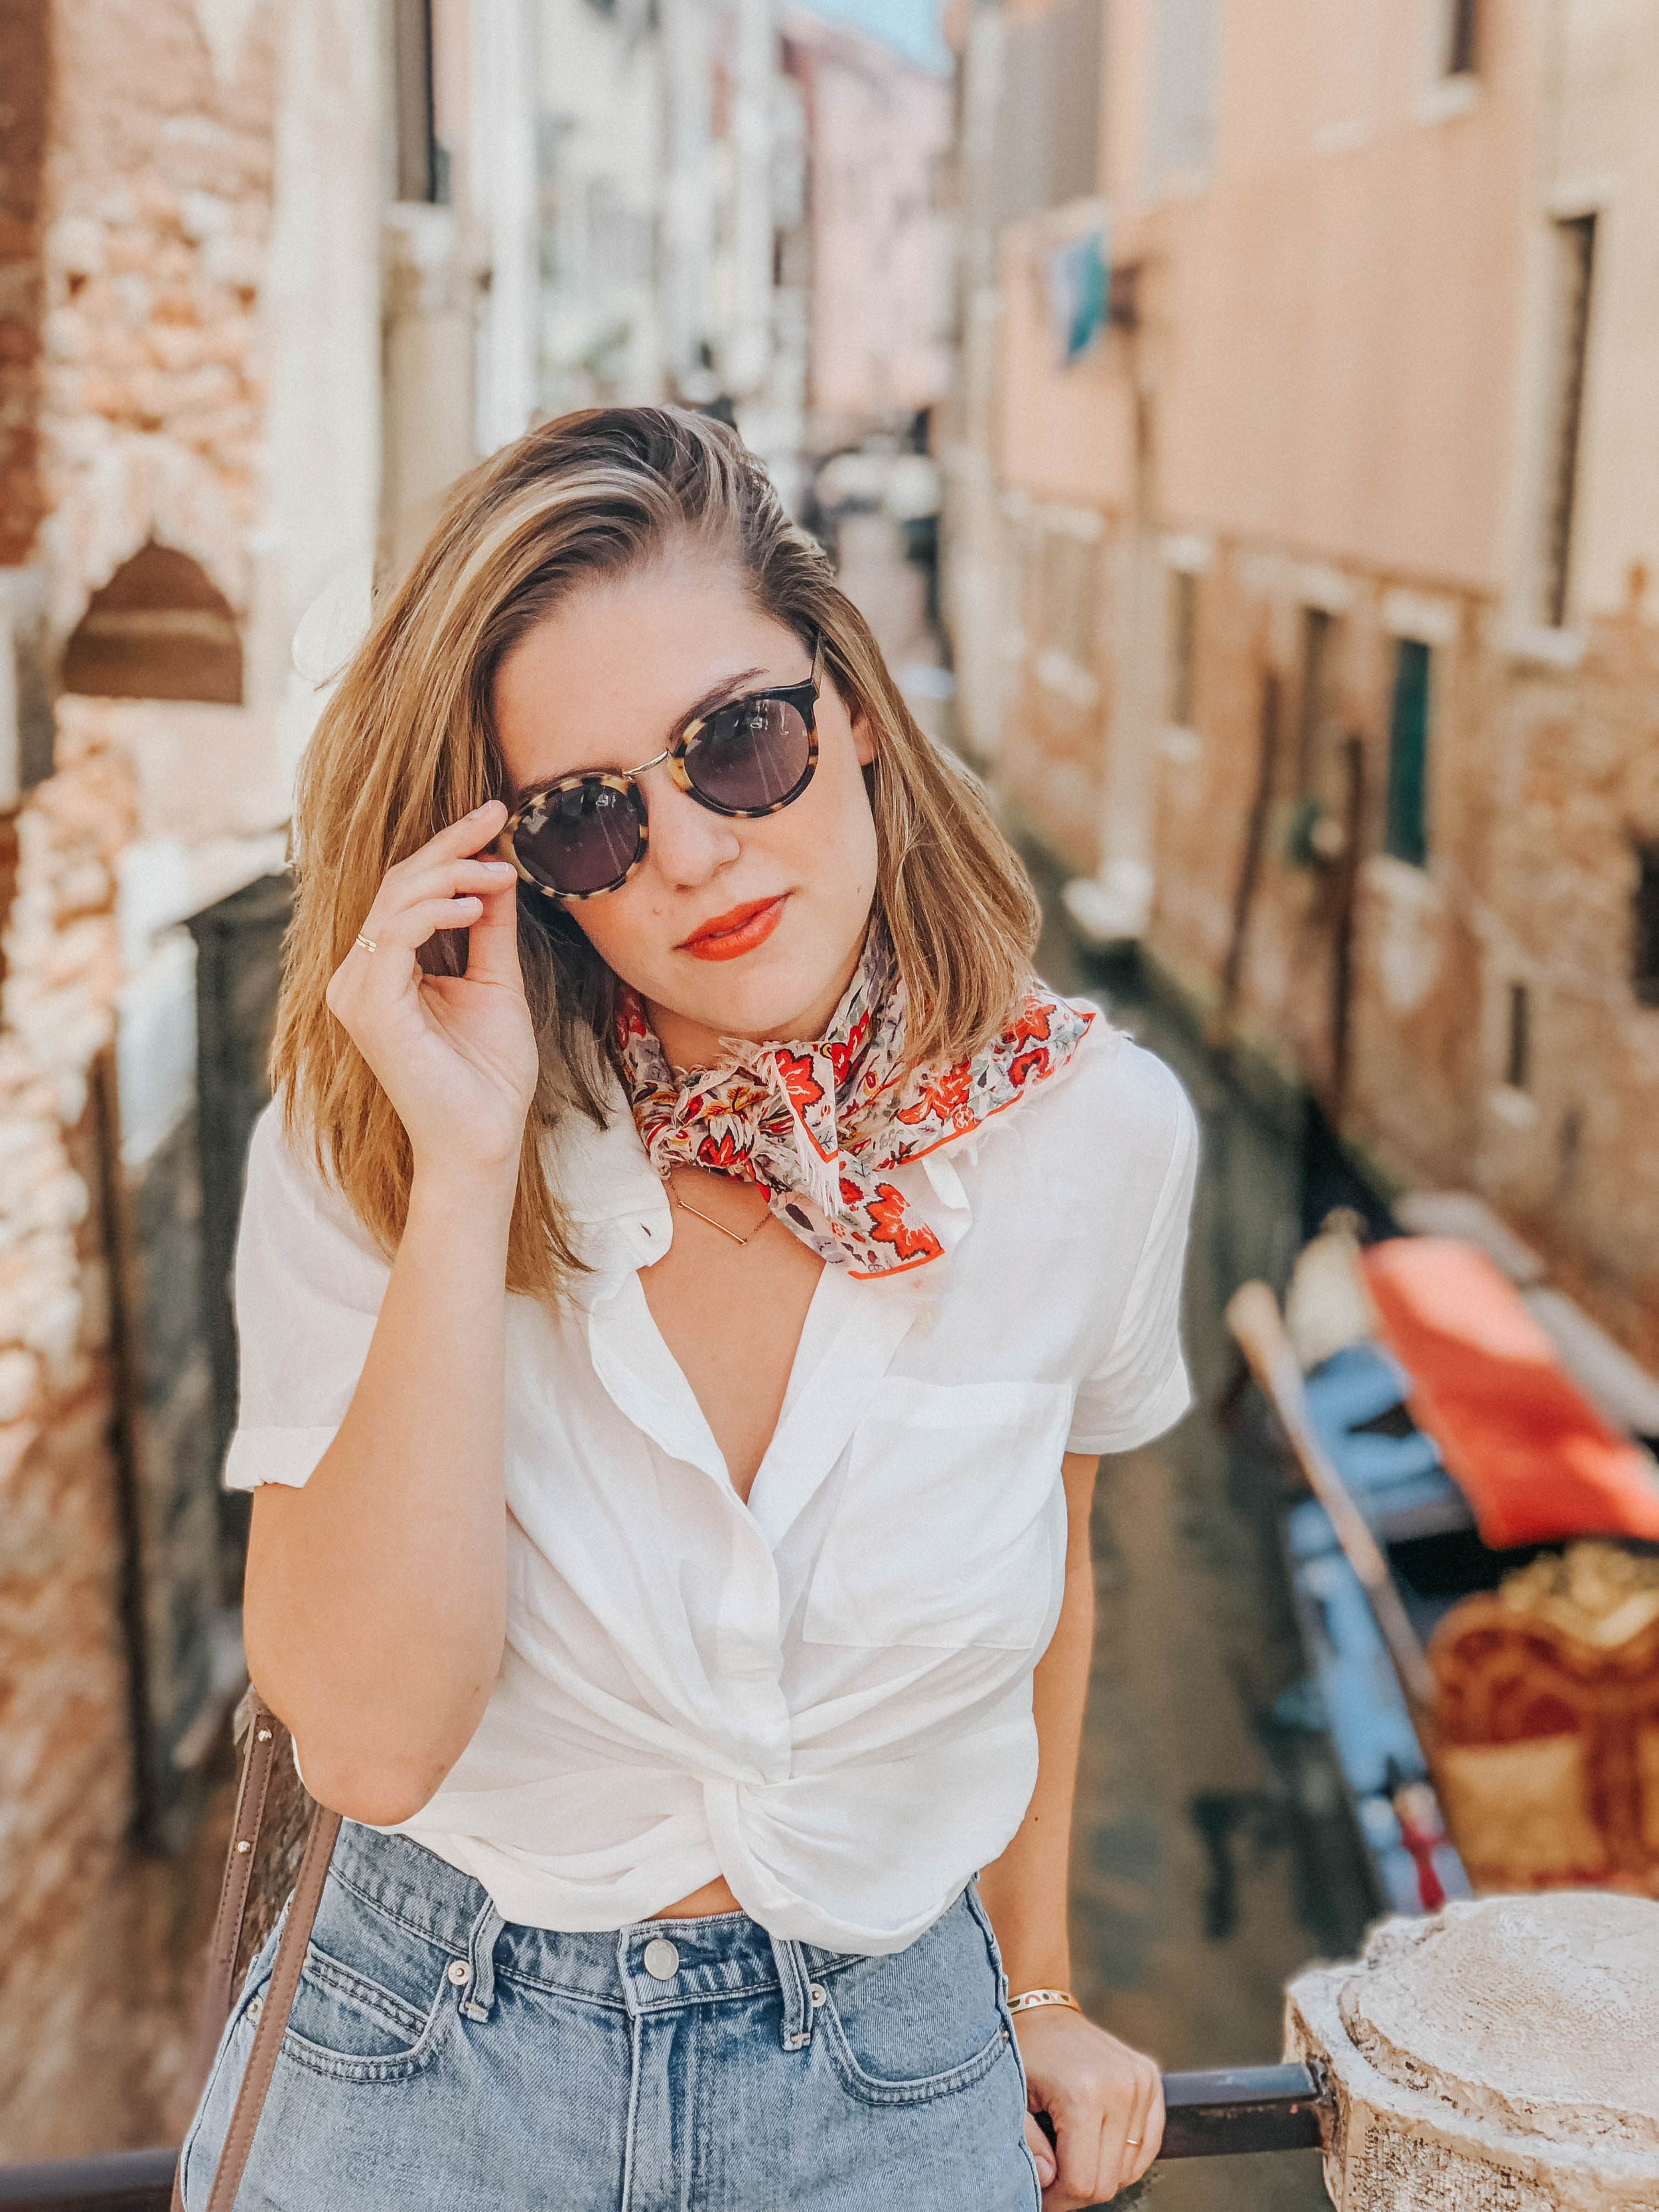 Madewell Accessories | Venice, Italy